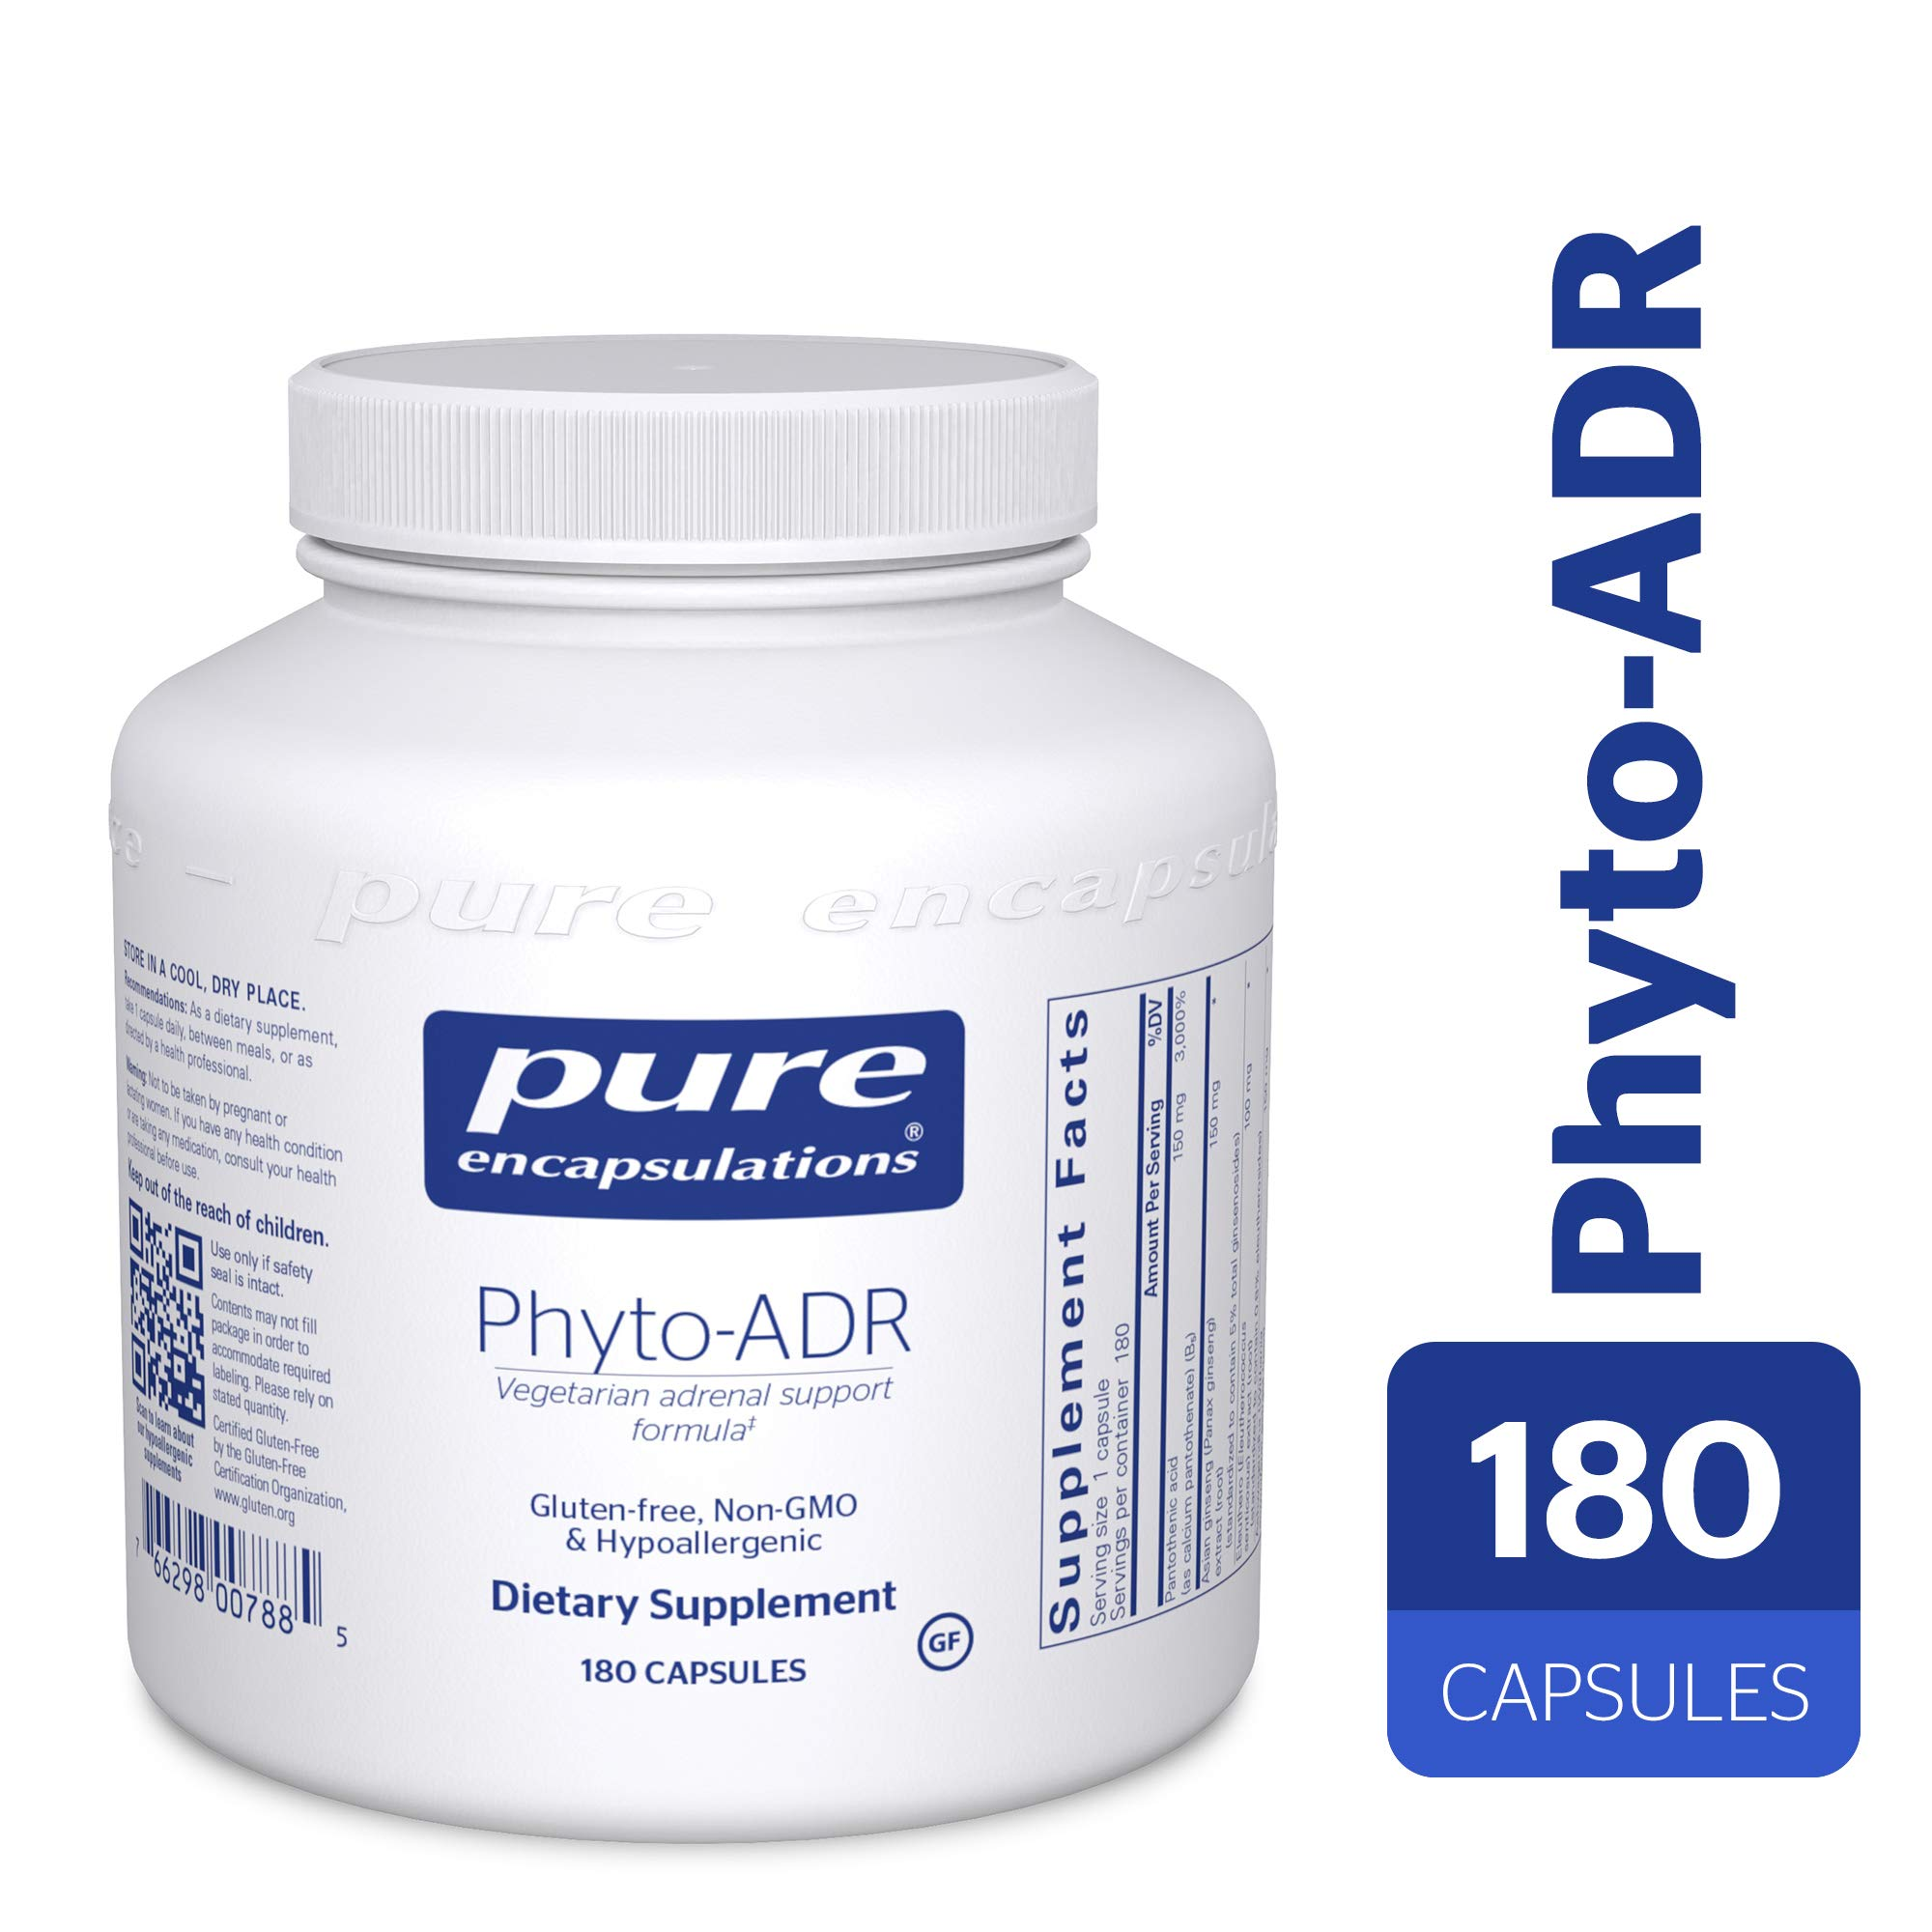 Pure Encapsulations - Phyto-ADR - Hypoallergenic Adrenal Support Formula for Vegetarians* - 180 Capsules